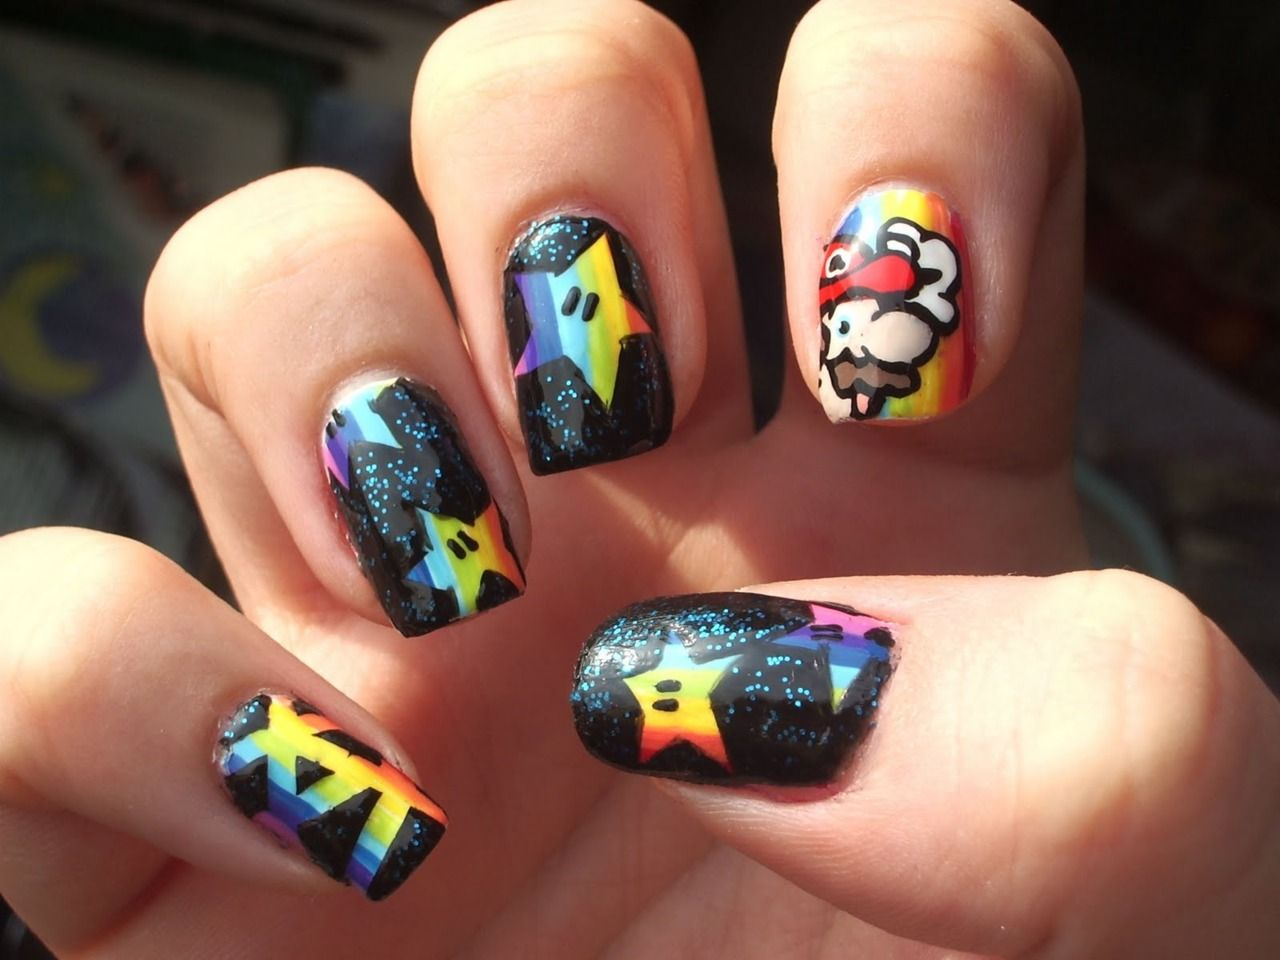 Get Your Geek On With These 21 Amazing Nail Art Designs